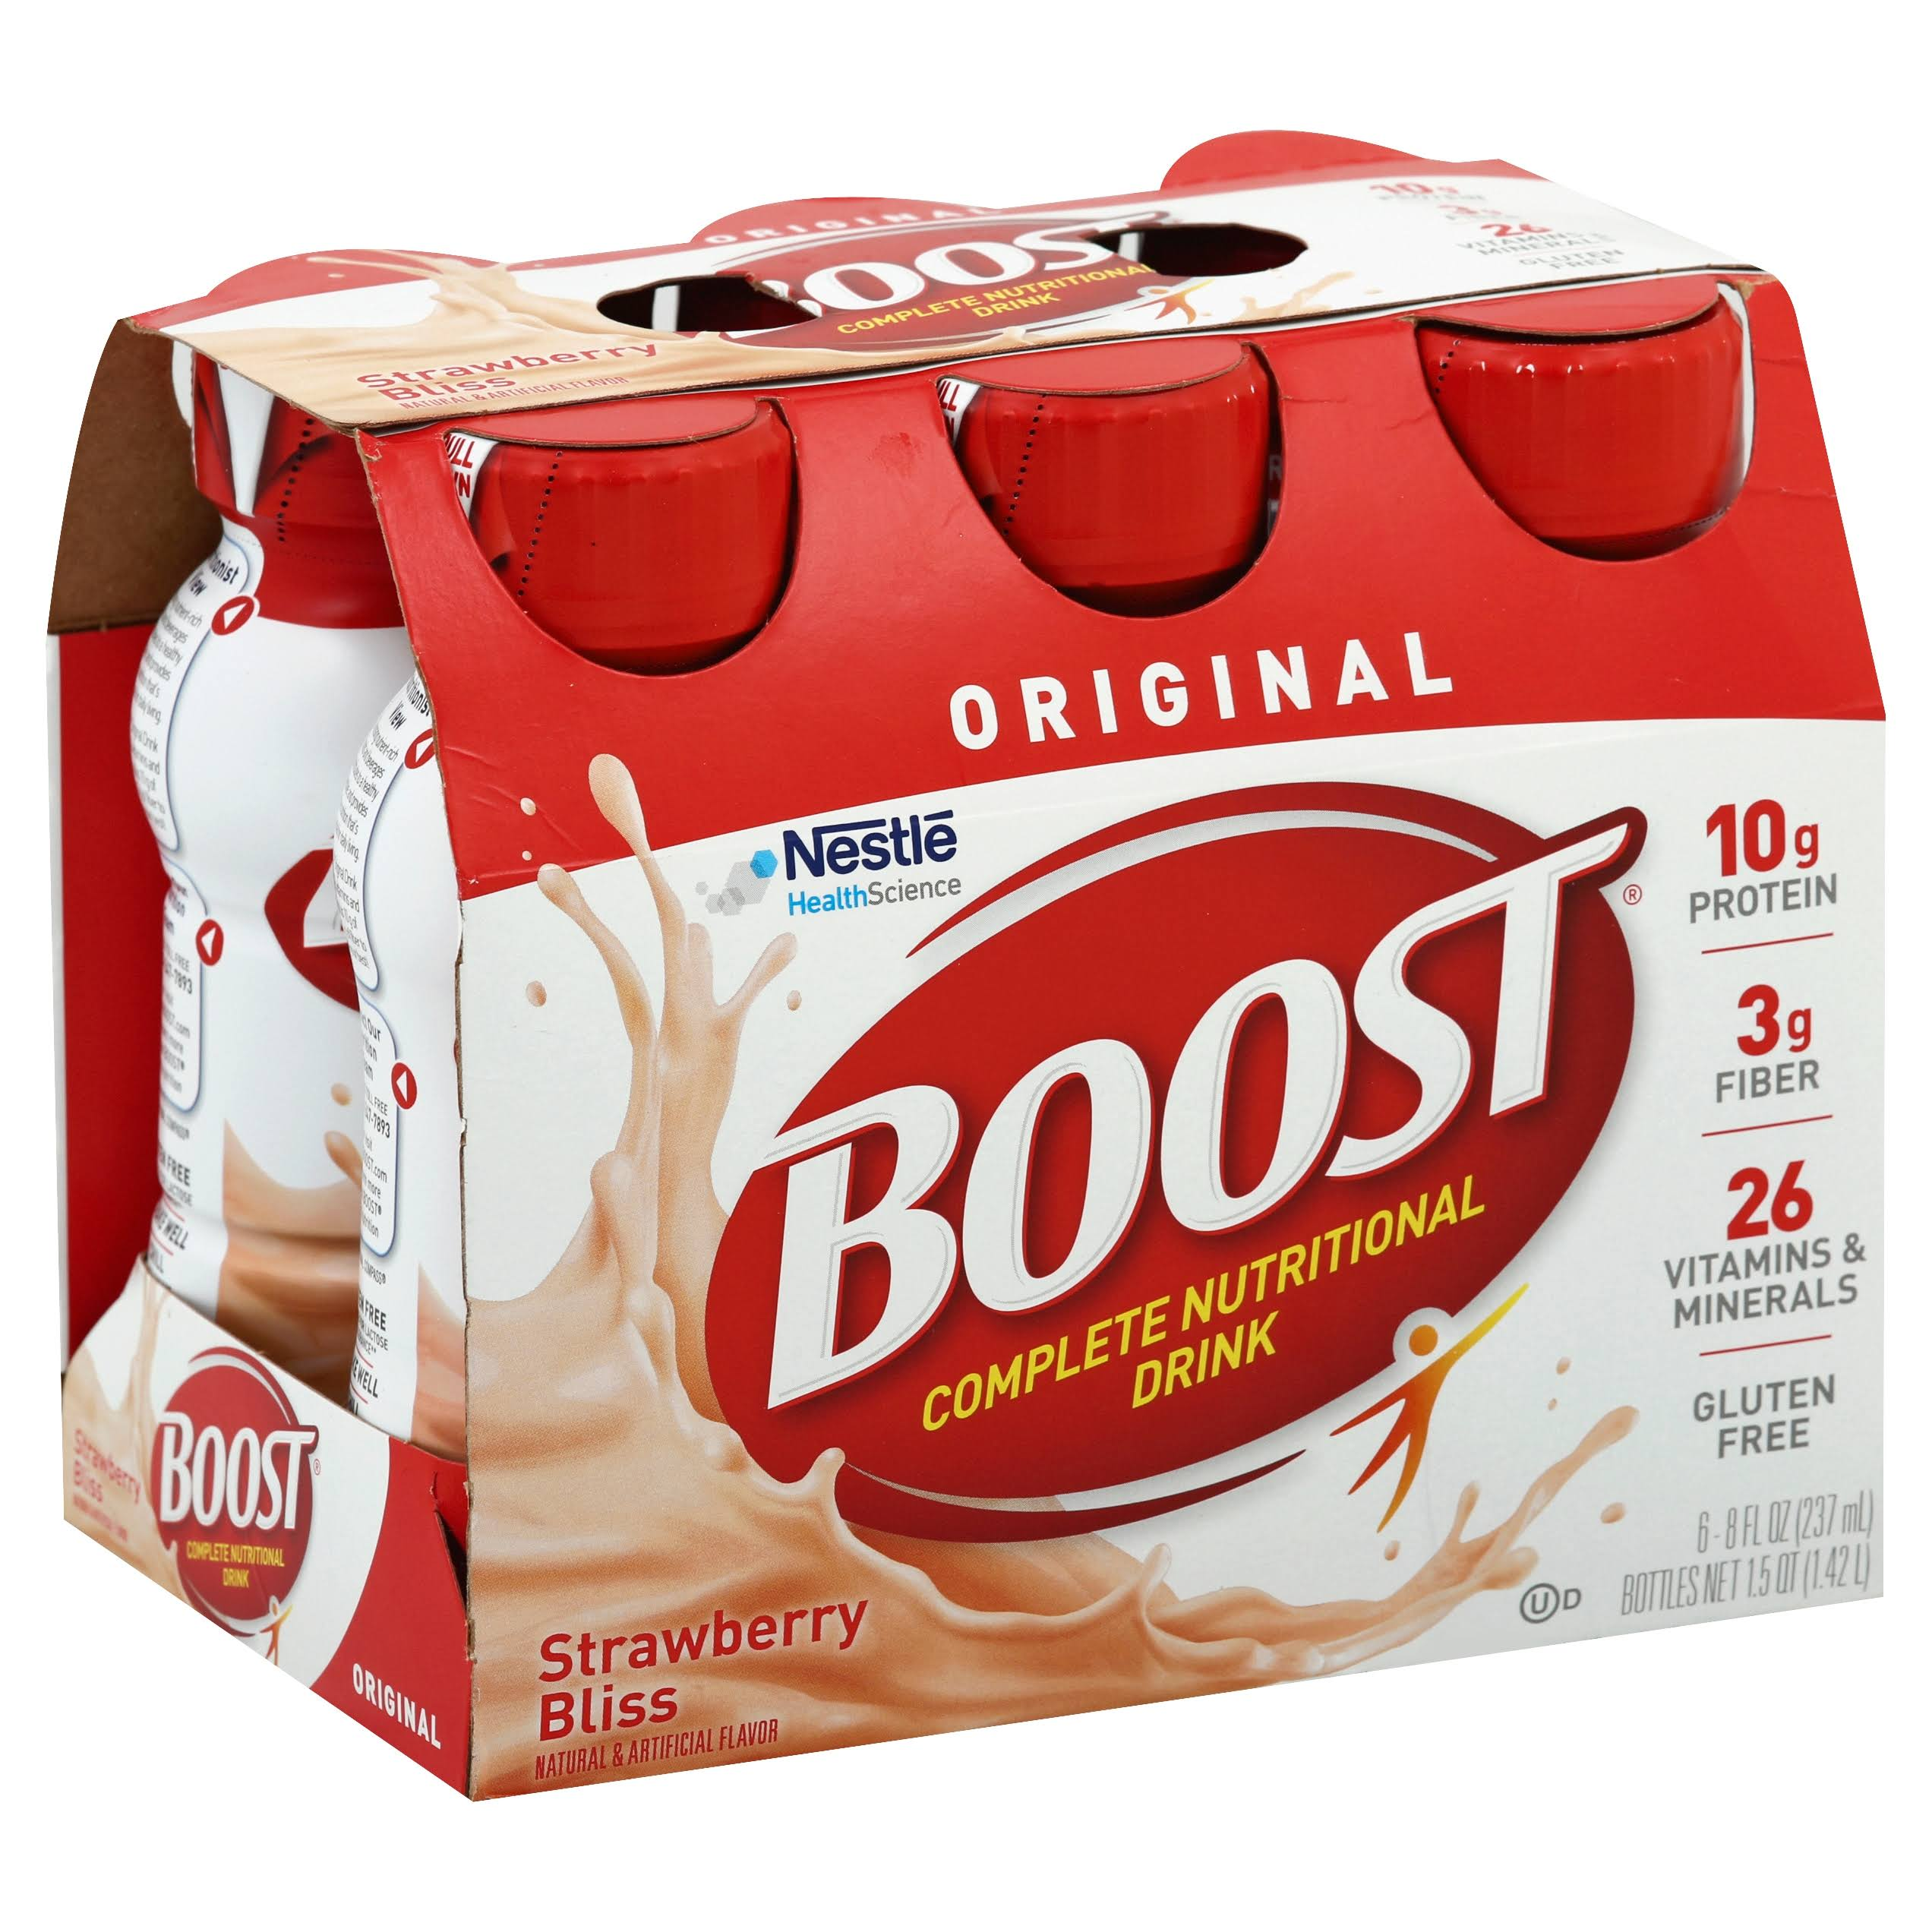 Boost Original Complete Nutritional Drink - Creamy Strawberry, 237ml, x6